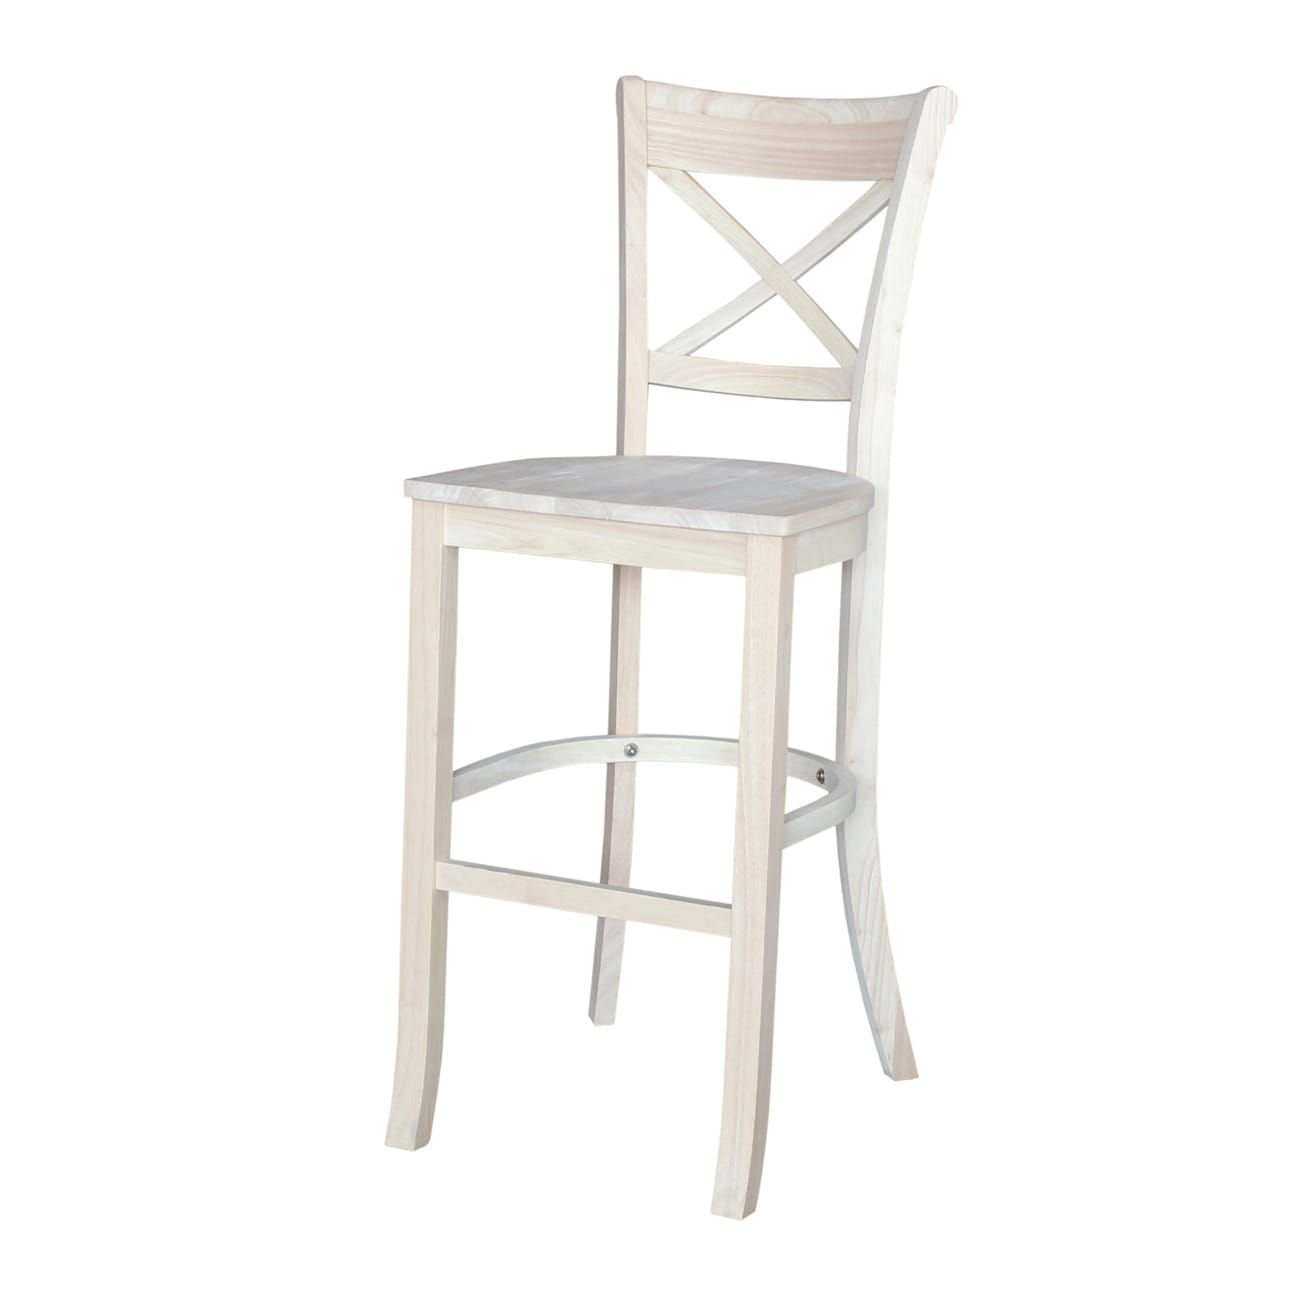 Astonishing Charlotte 30 Inch Bar Stool Ready To Finish 30 Inch Andrewgaddart Wooden Chair Designs For Living Room Andrewgaddartcom